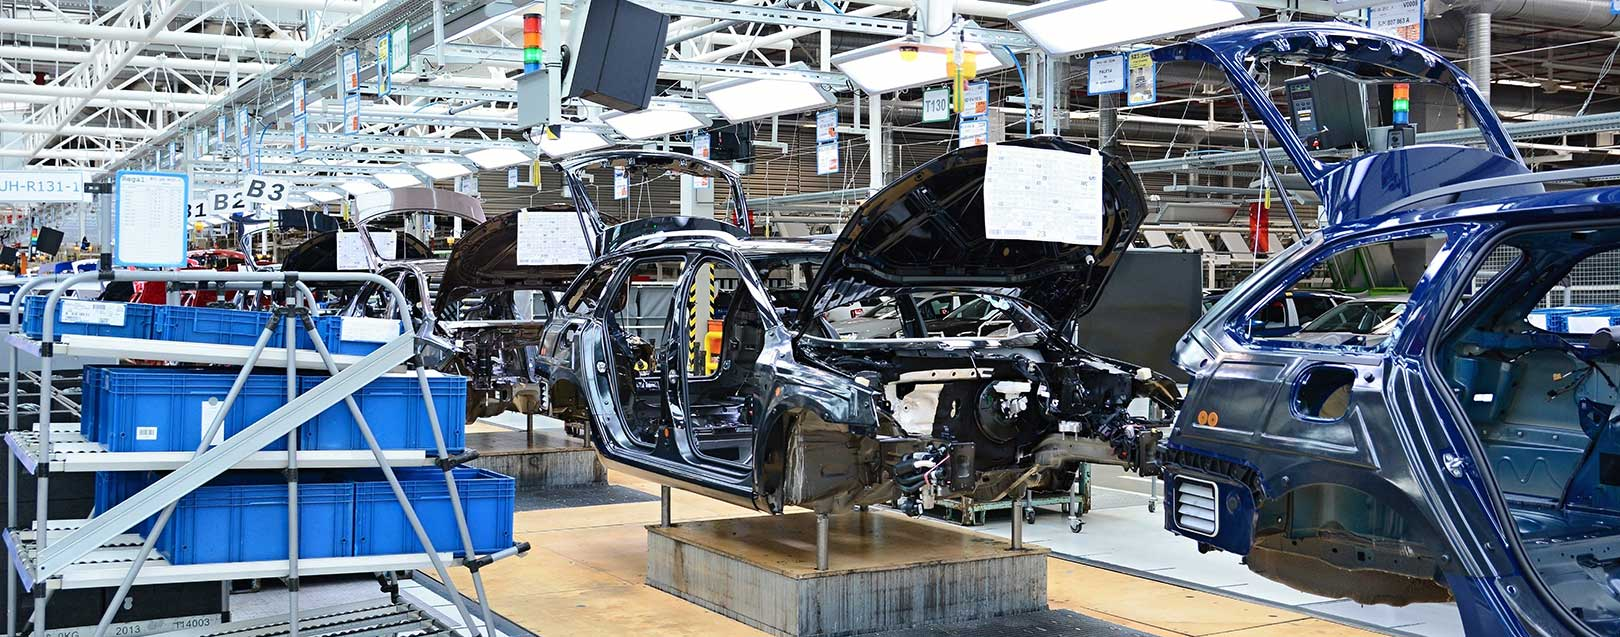 India has good scope of global trade in auto components